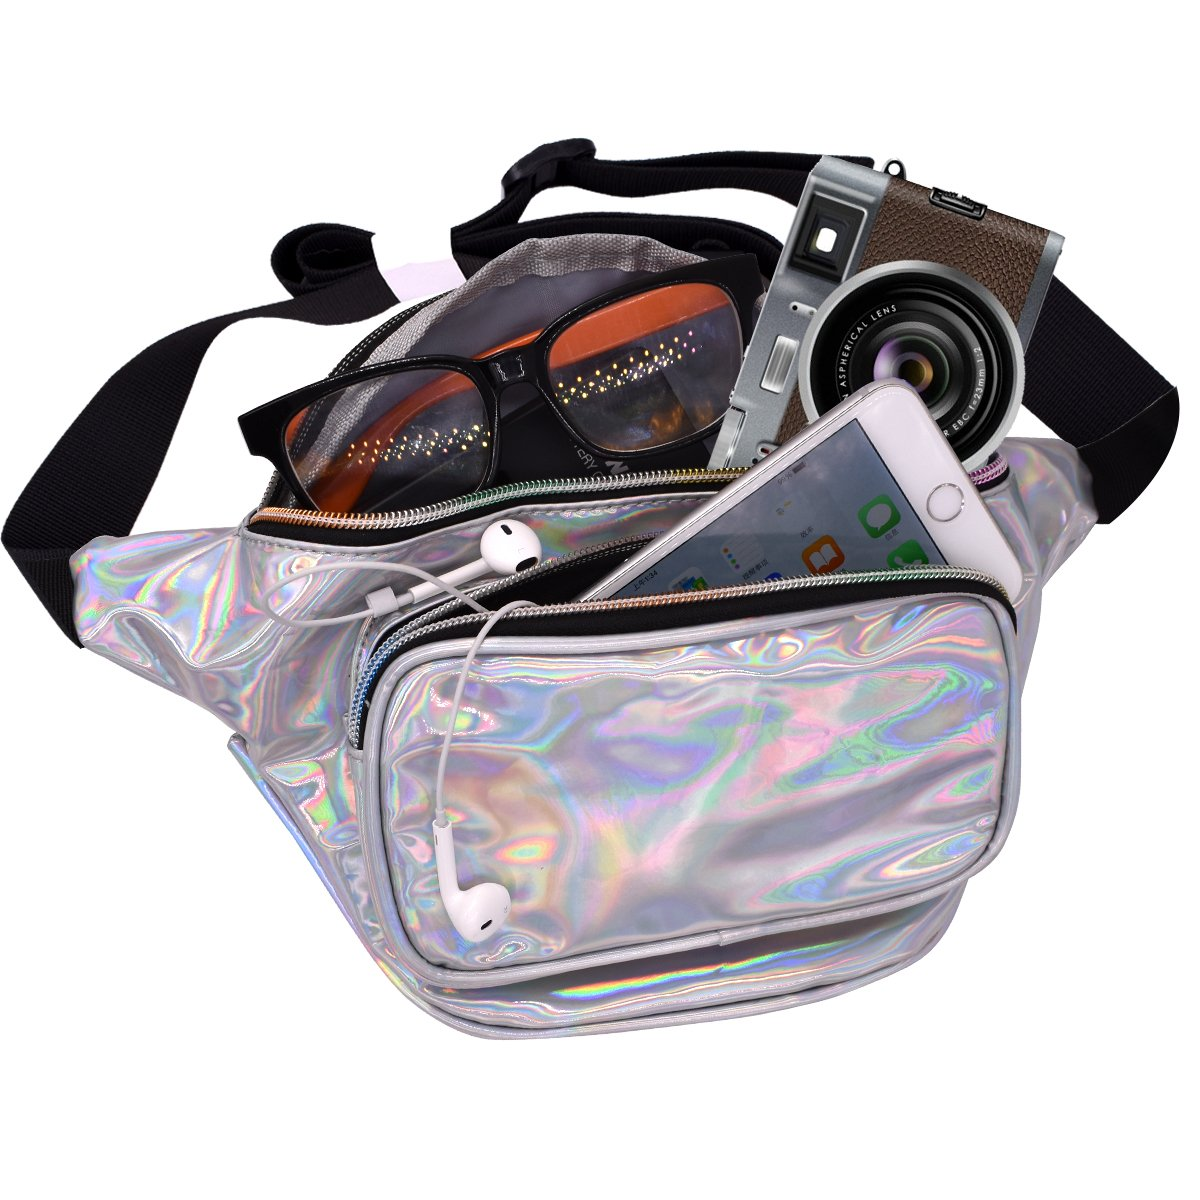 Water Resistant Shiny Neon Fanny Bag for Women Rave Festival Hologram Bum Travel Purse Waist Pack